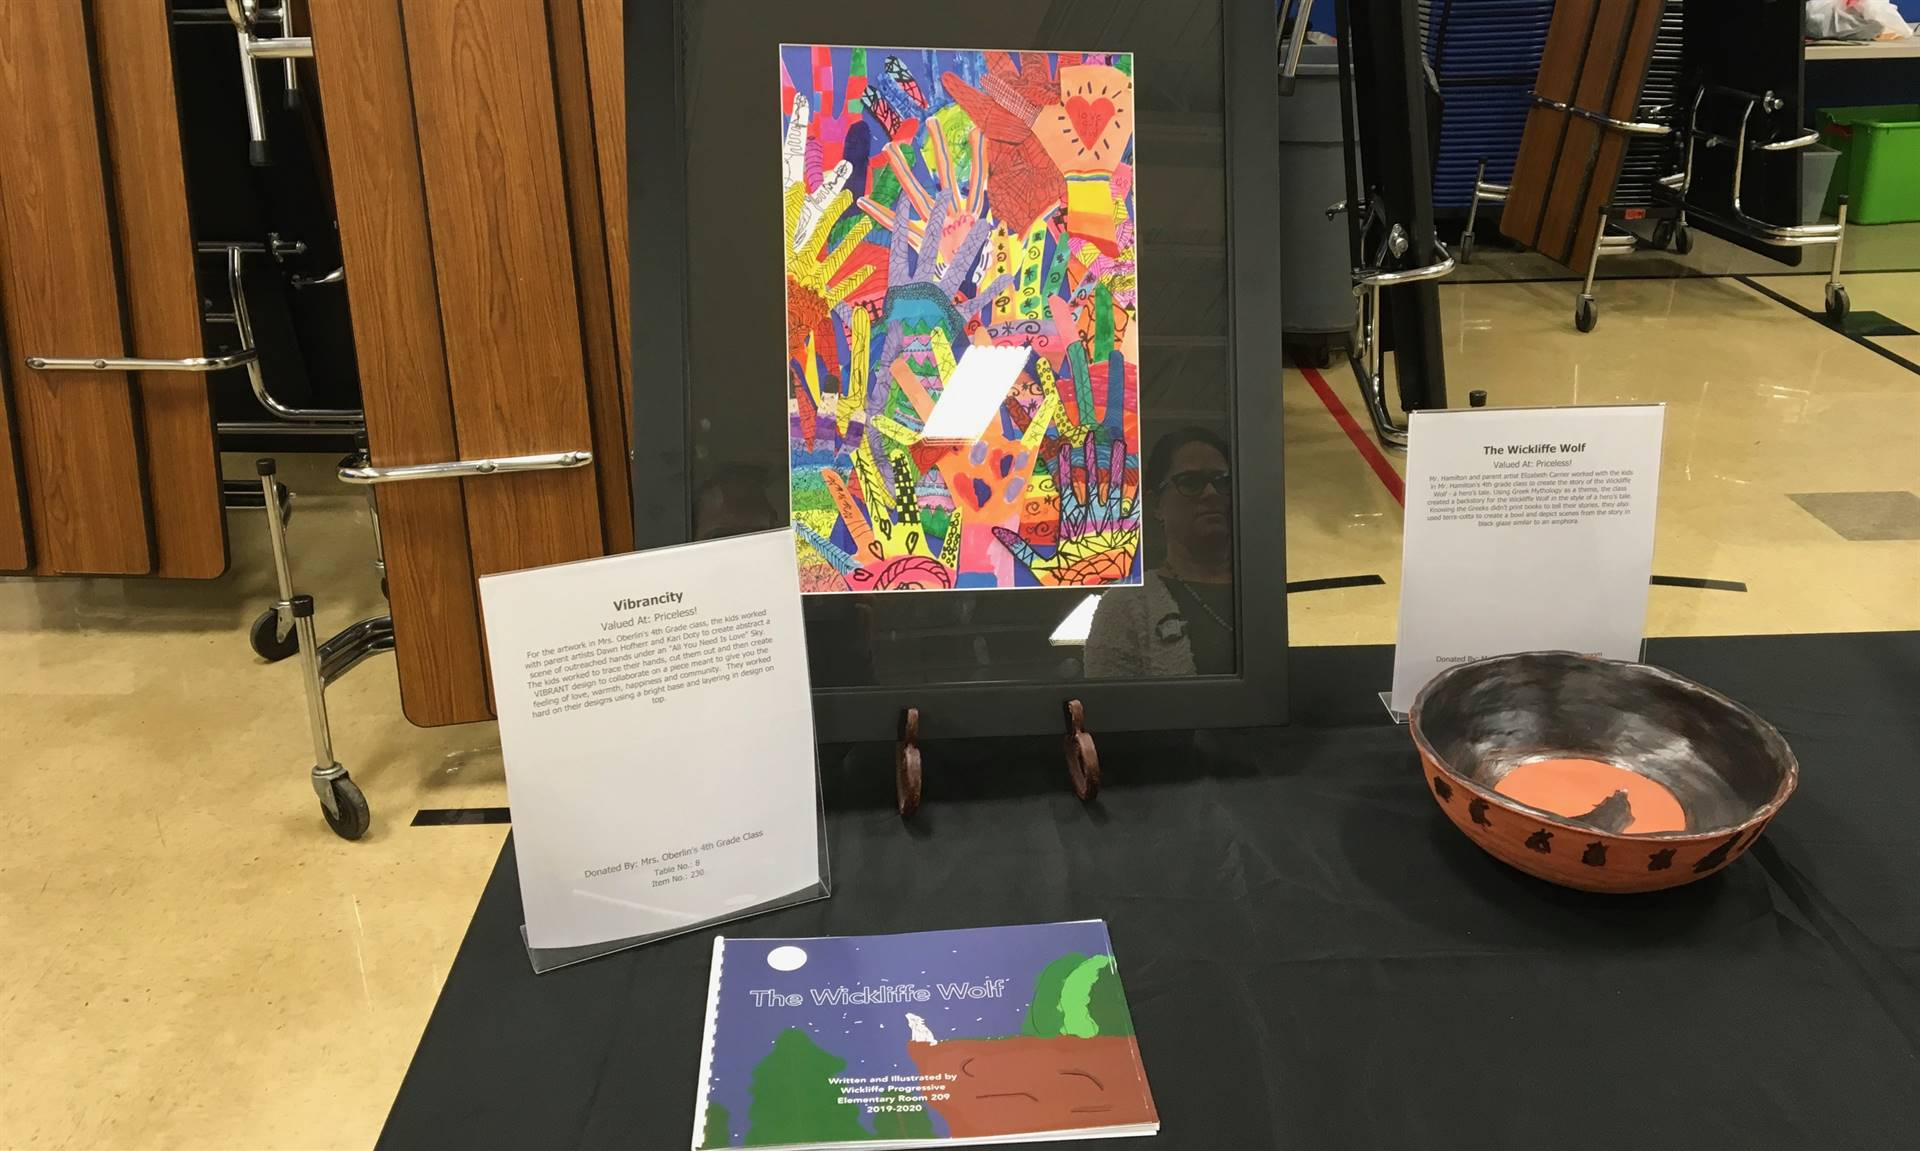 Informal Affair Art Project: Vibrancity and Wickliffe Wolf Book